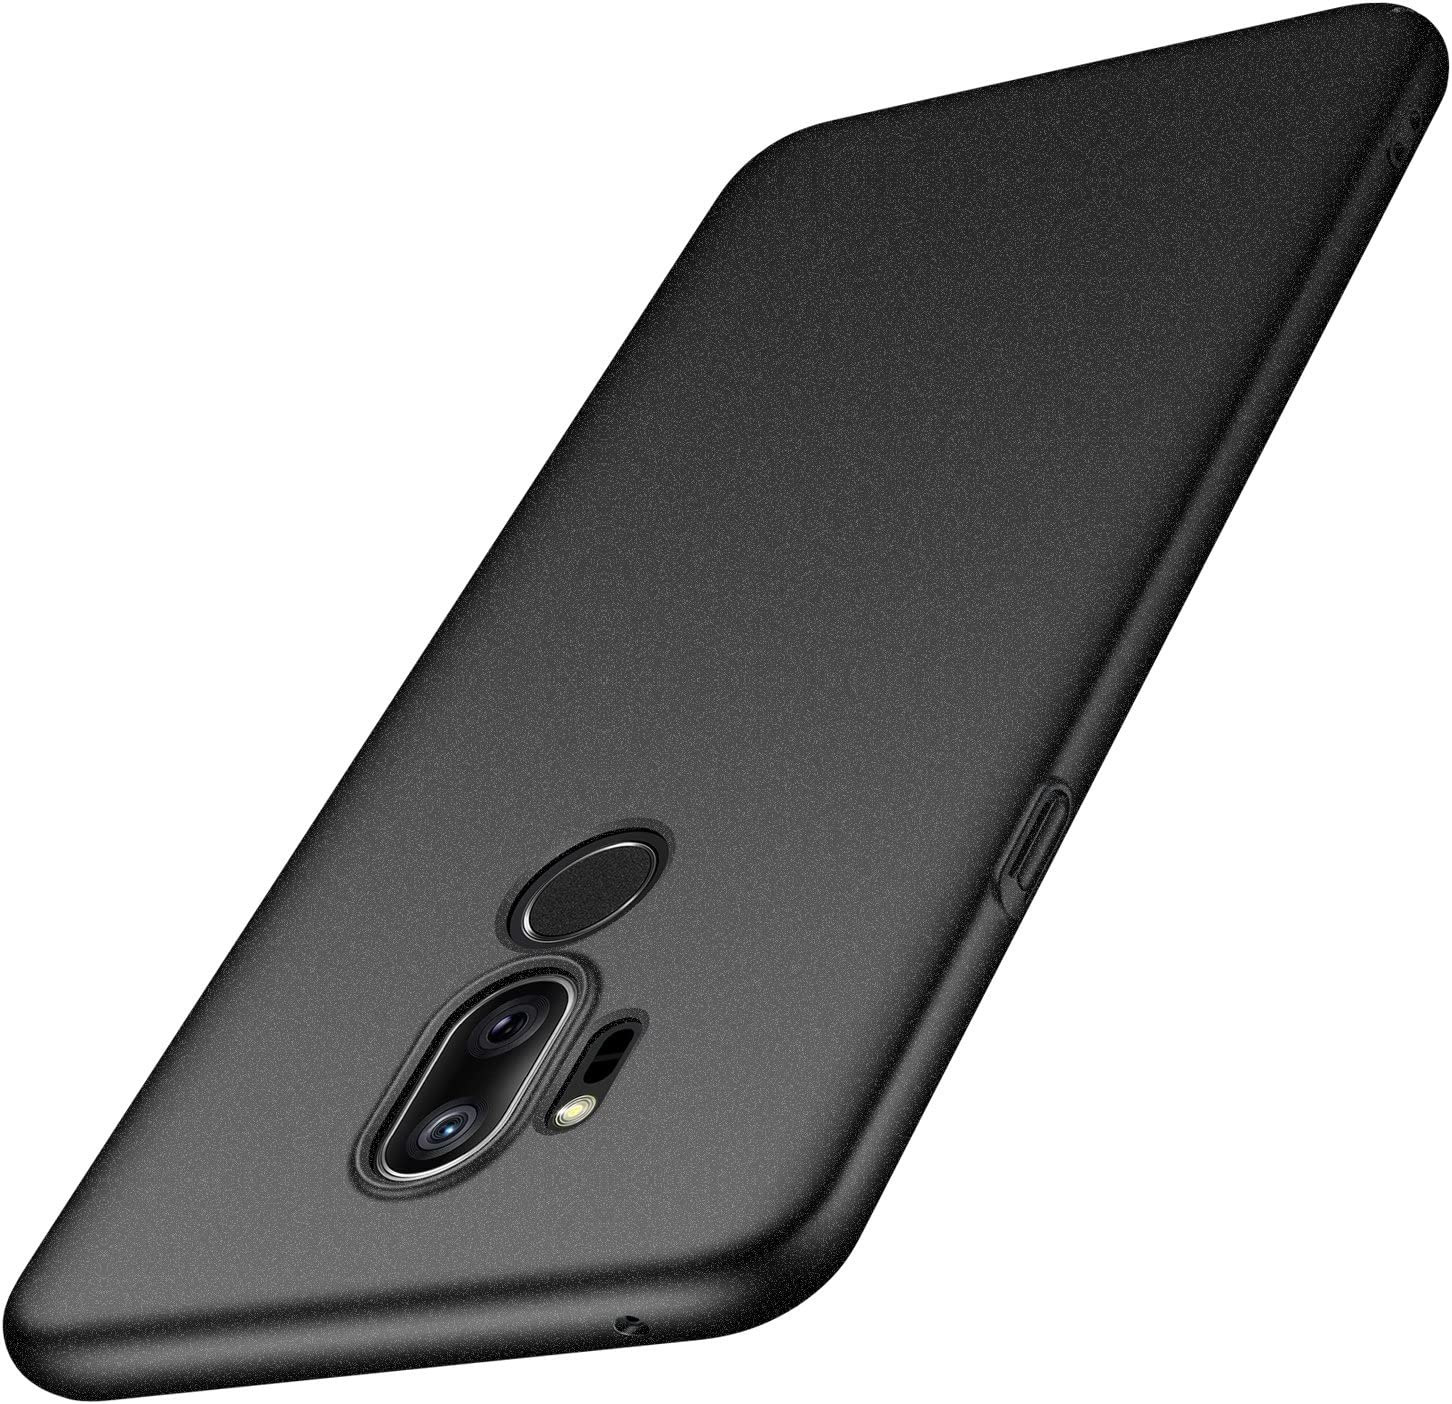 Arkour LG G7 ThinQ Case, LG G7 Case, Minimalist Ultra Thin Slim Fit Non-Slip Matte Surface Hard PC Cover for LG G7 ThinQ (Gravel Black)